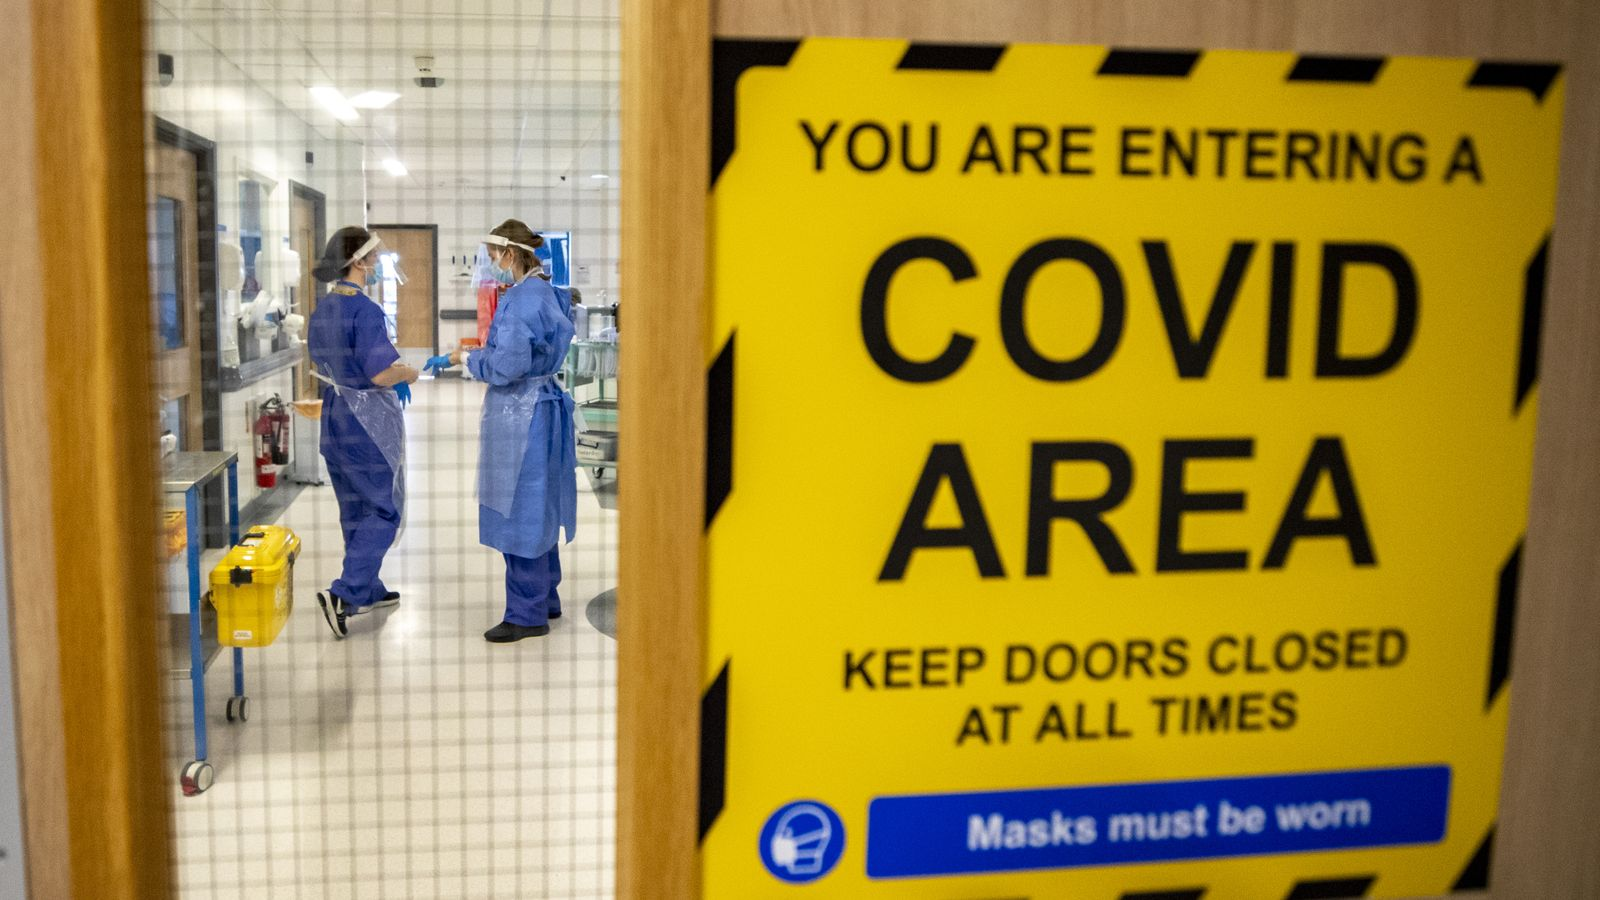 COVID-19: Man who threatened to blow up NHS hospital unless he was paid £10m convicted of extortion